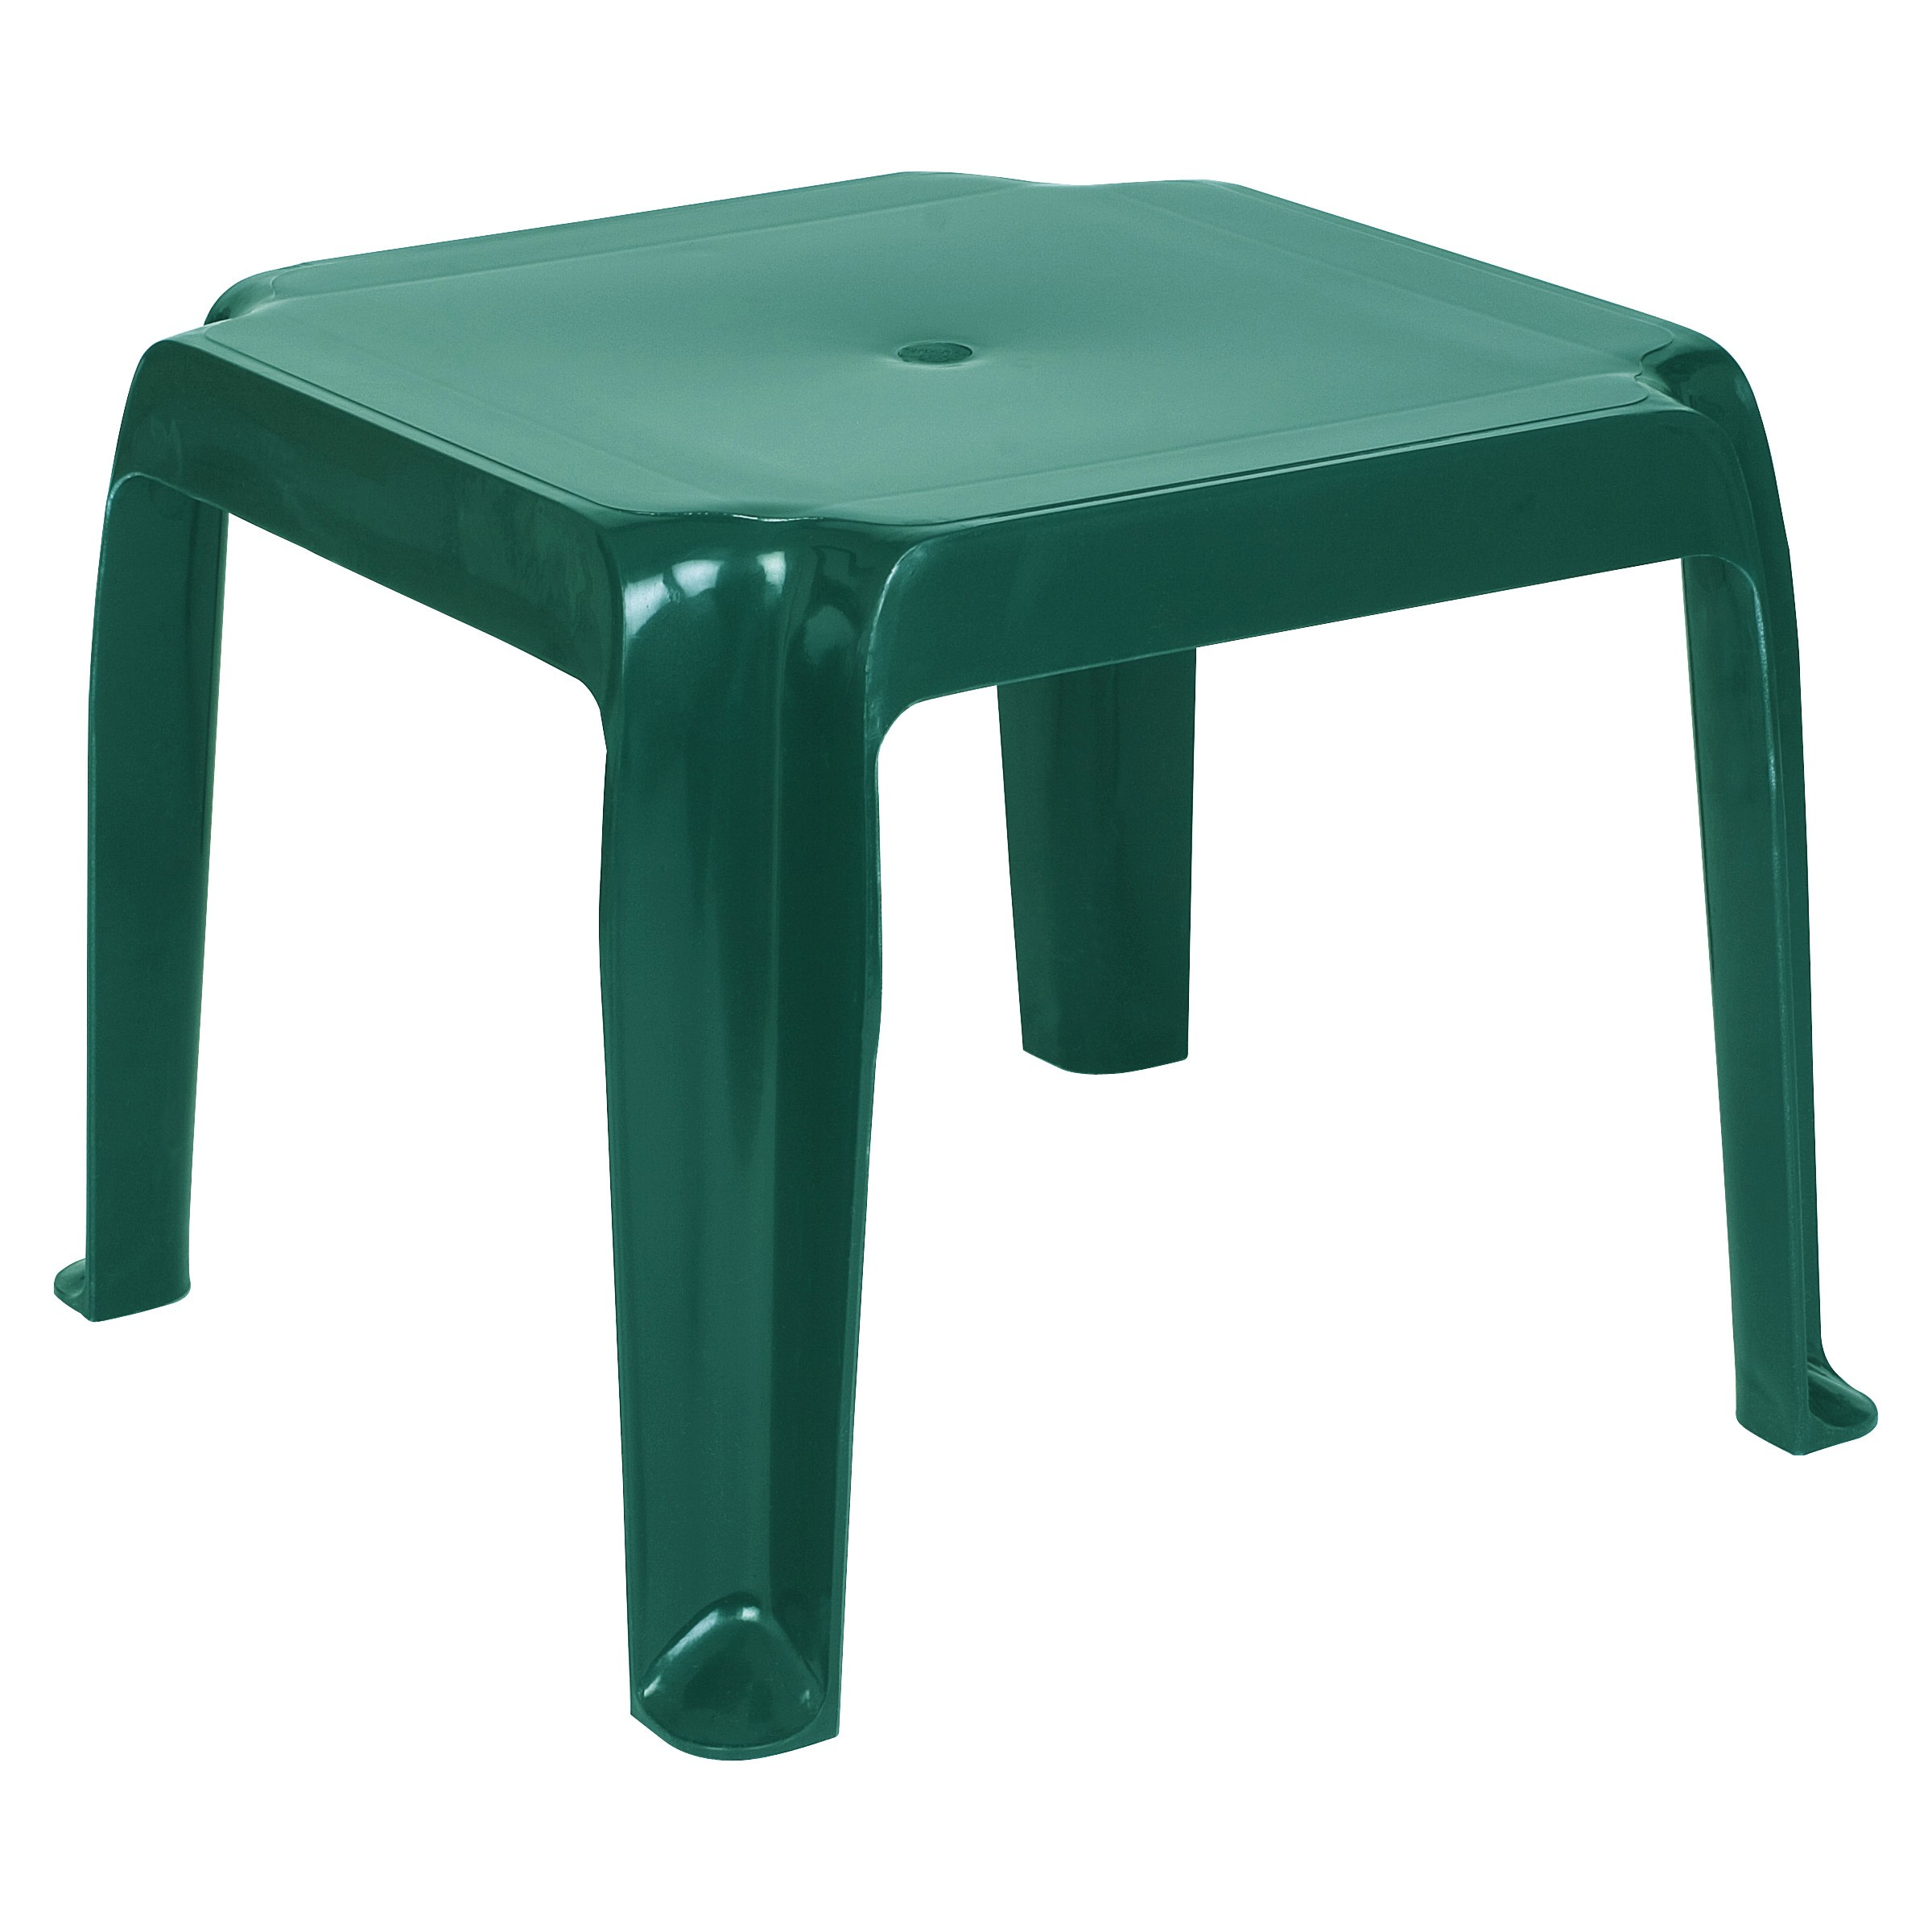 Sunray Square Side Table - Green